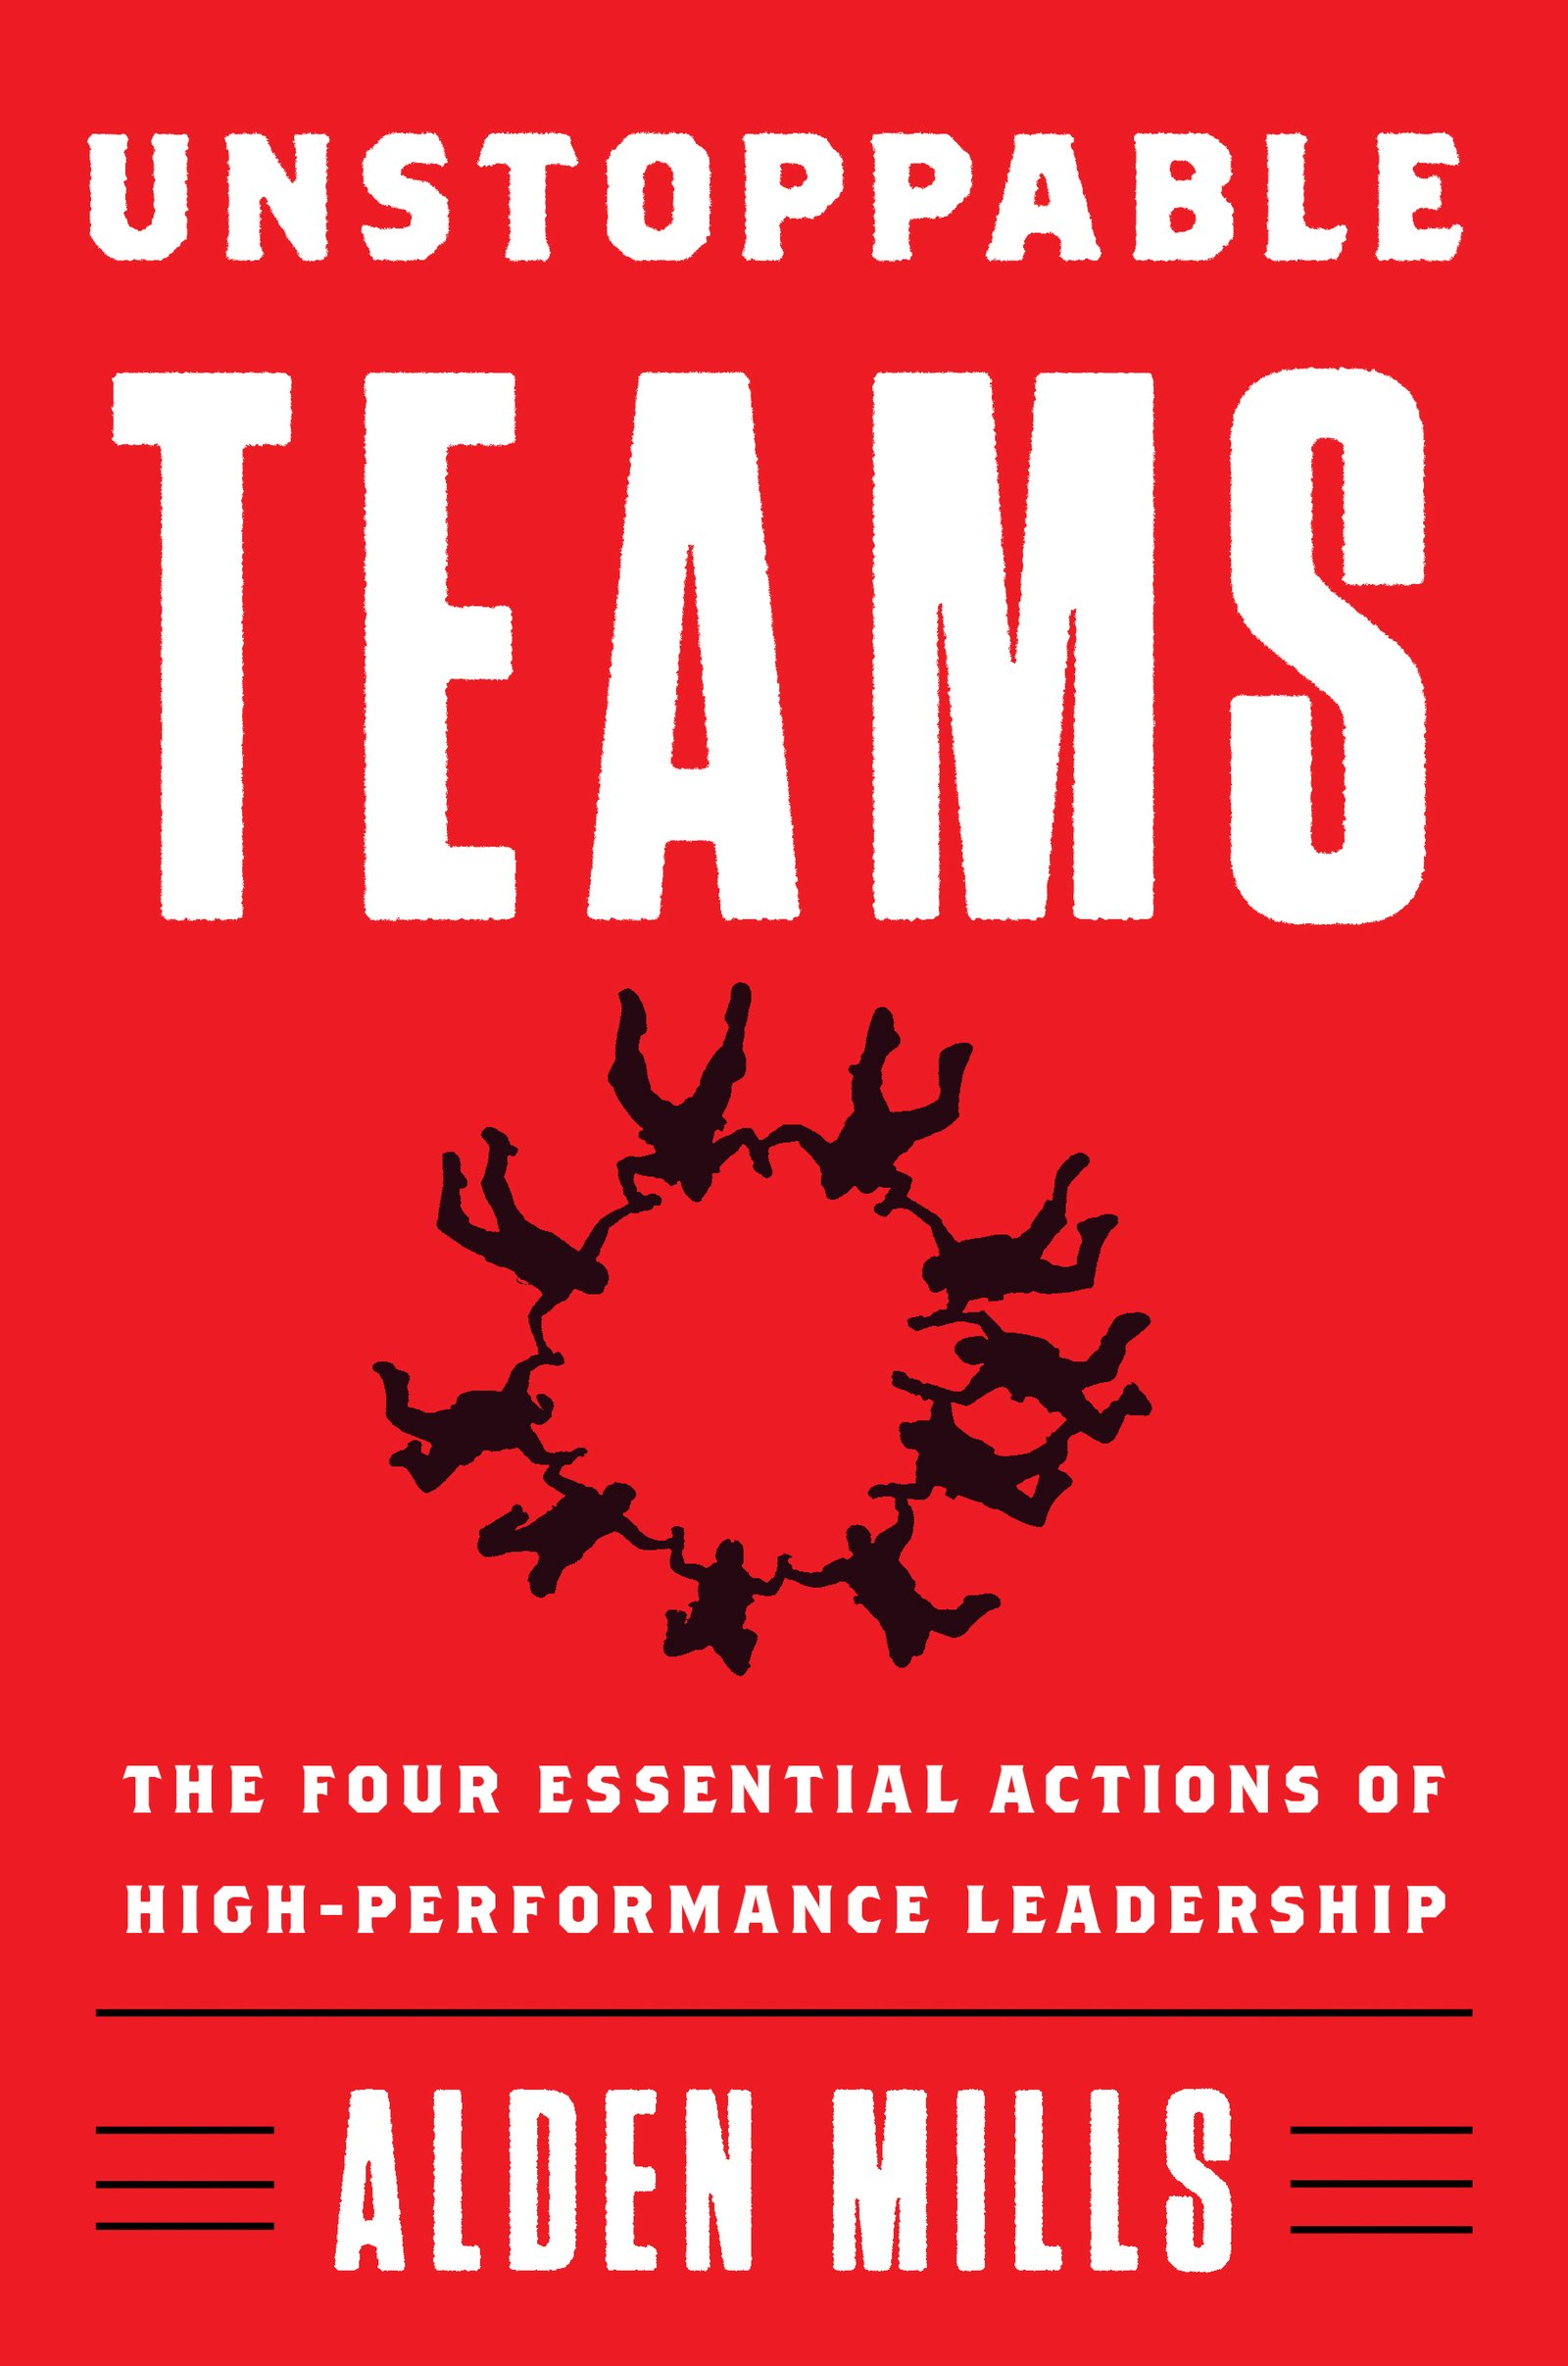 Unstoppable teams by Alden Mills book cover.